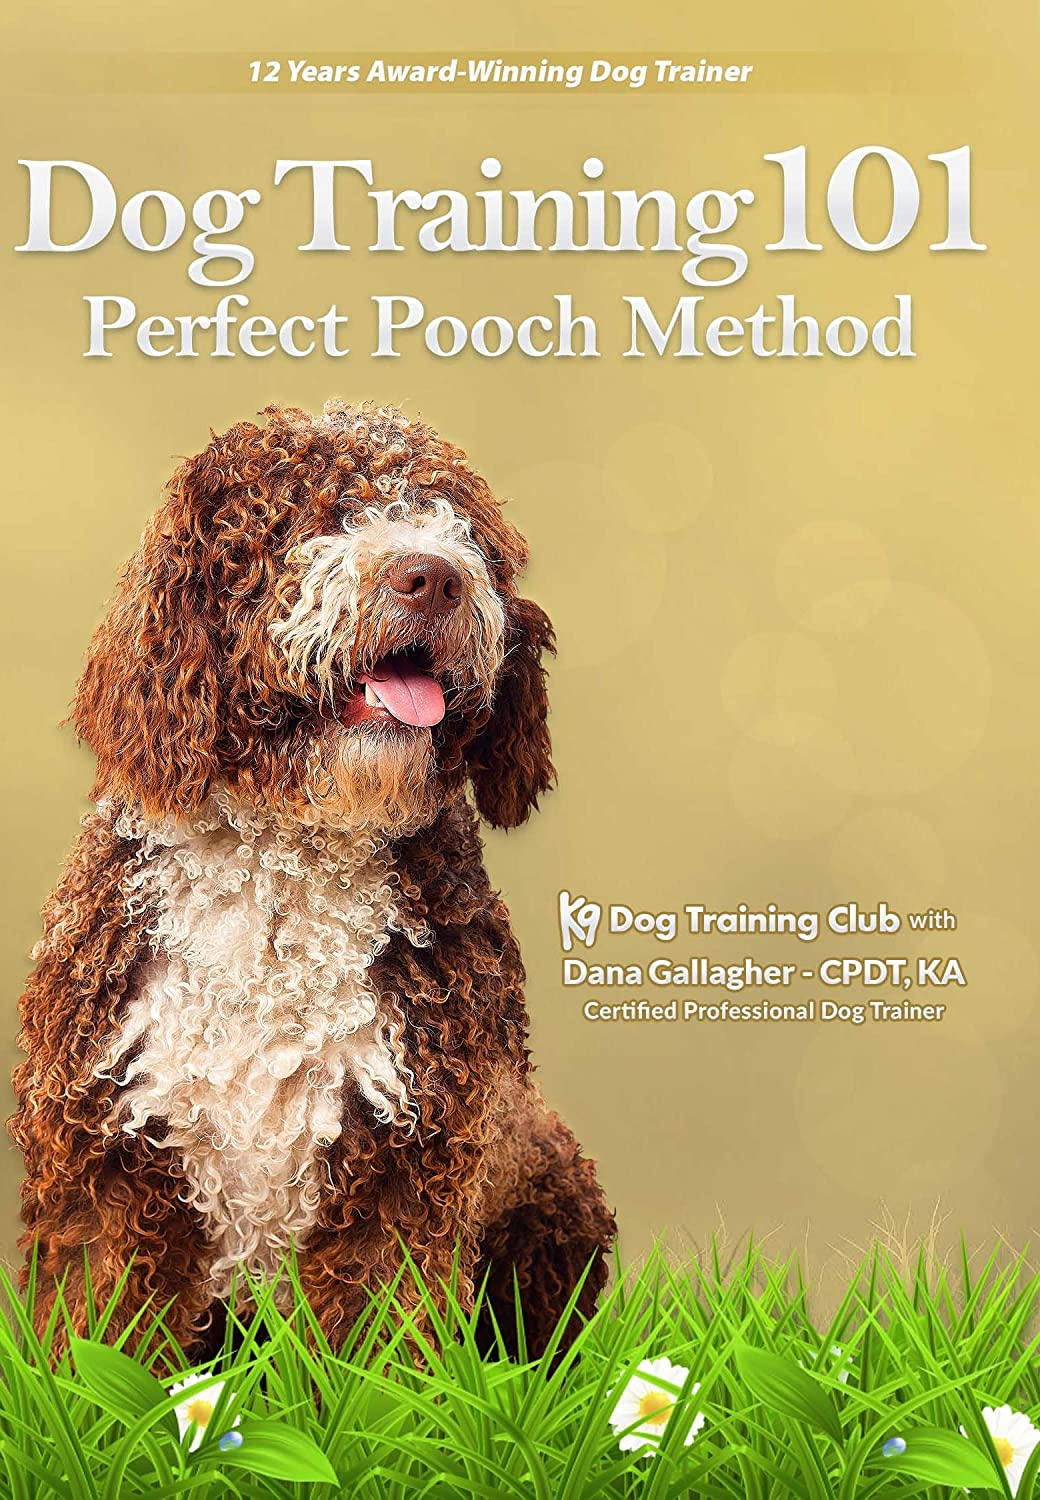 Amazon Com Dog Training 101 Dvd Pet Puppy Perfect Pooch Obedience Method Movies Tv